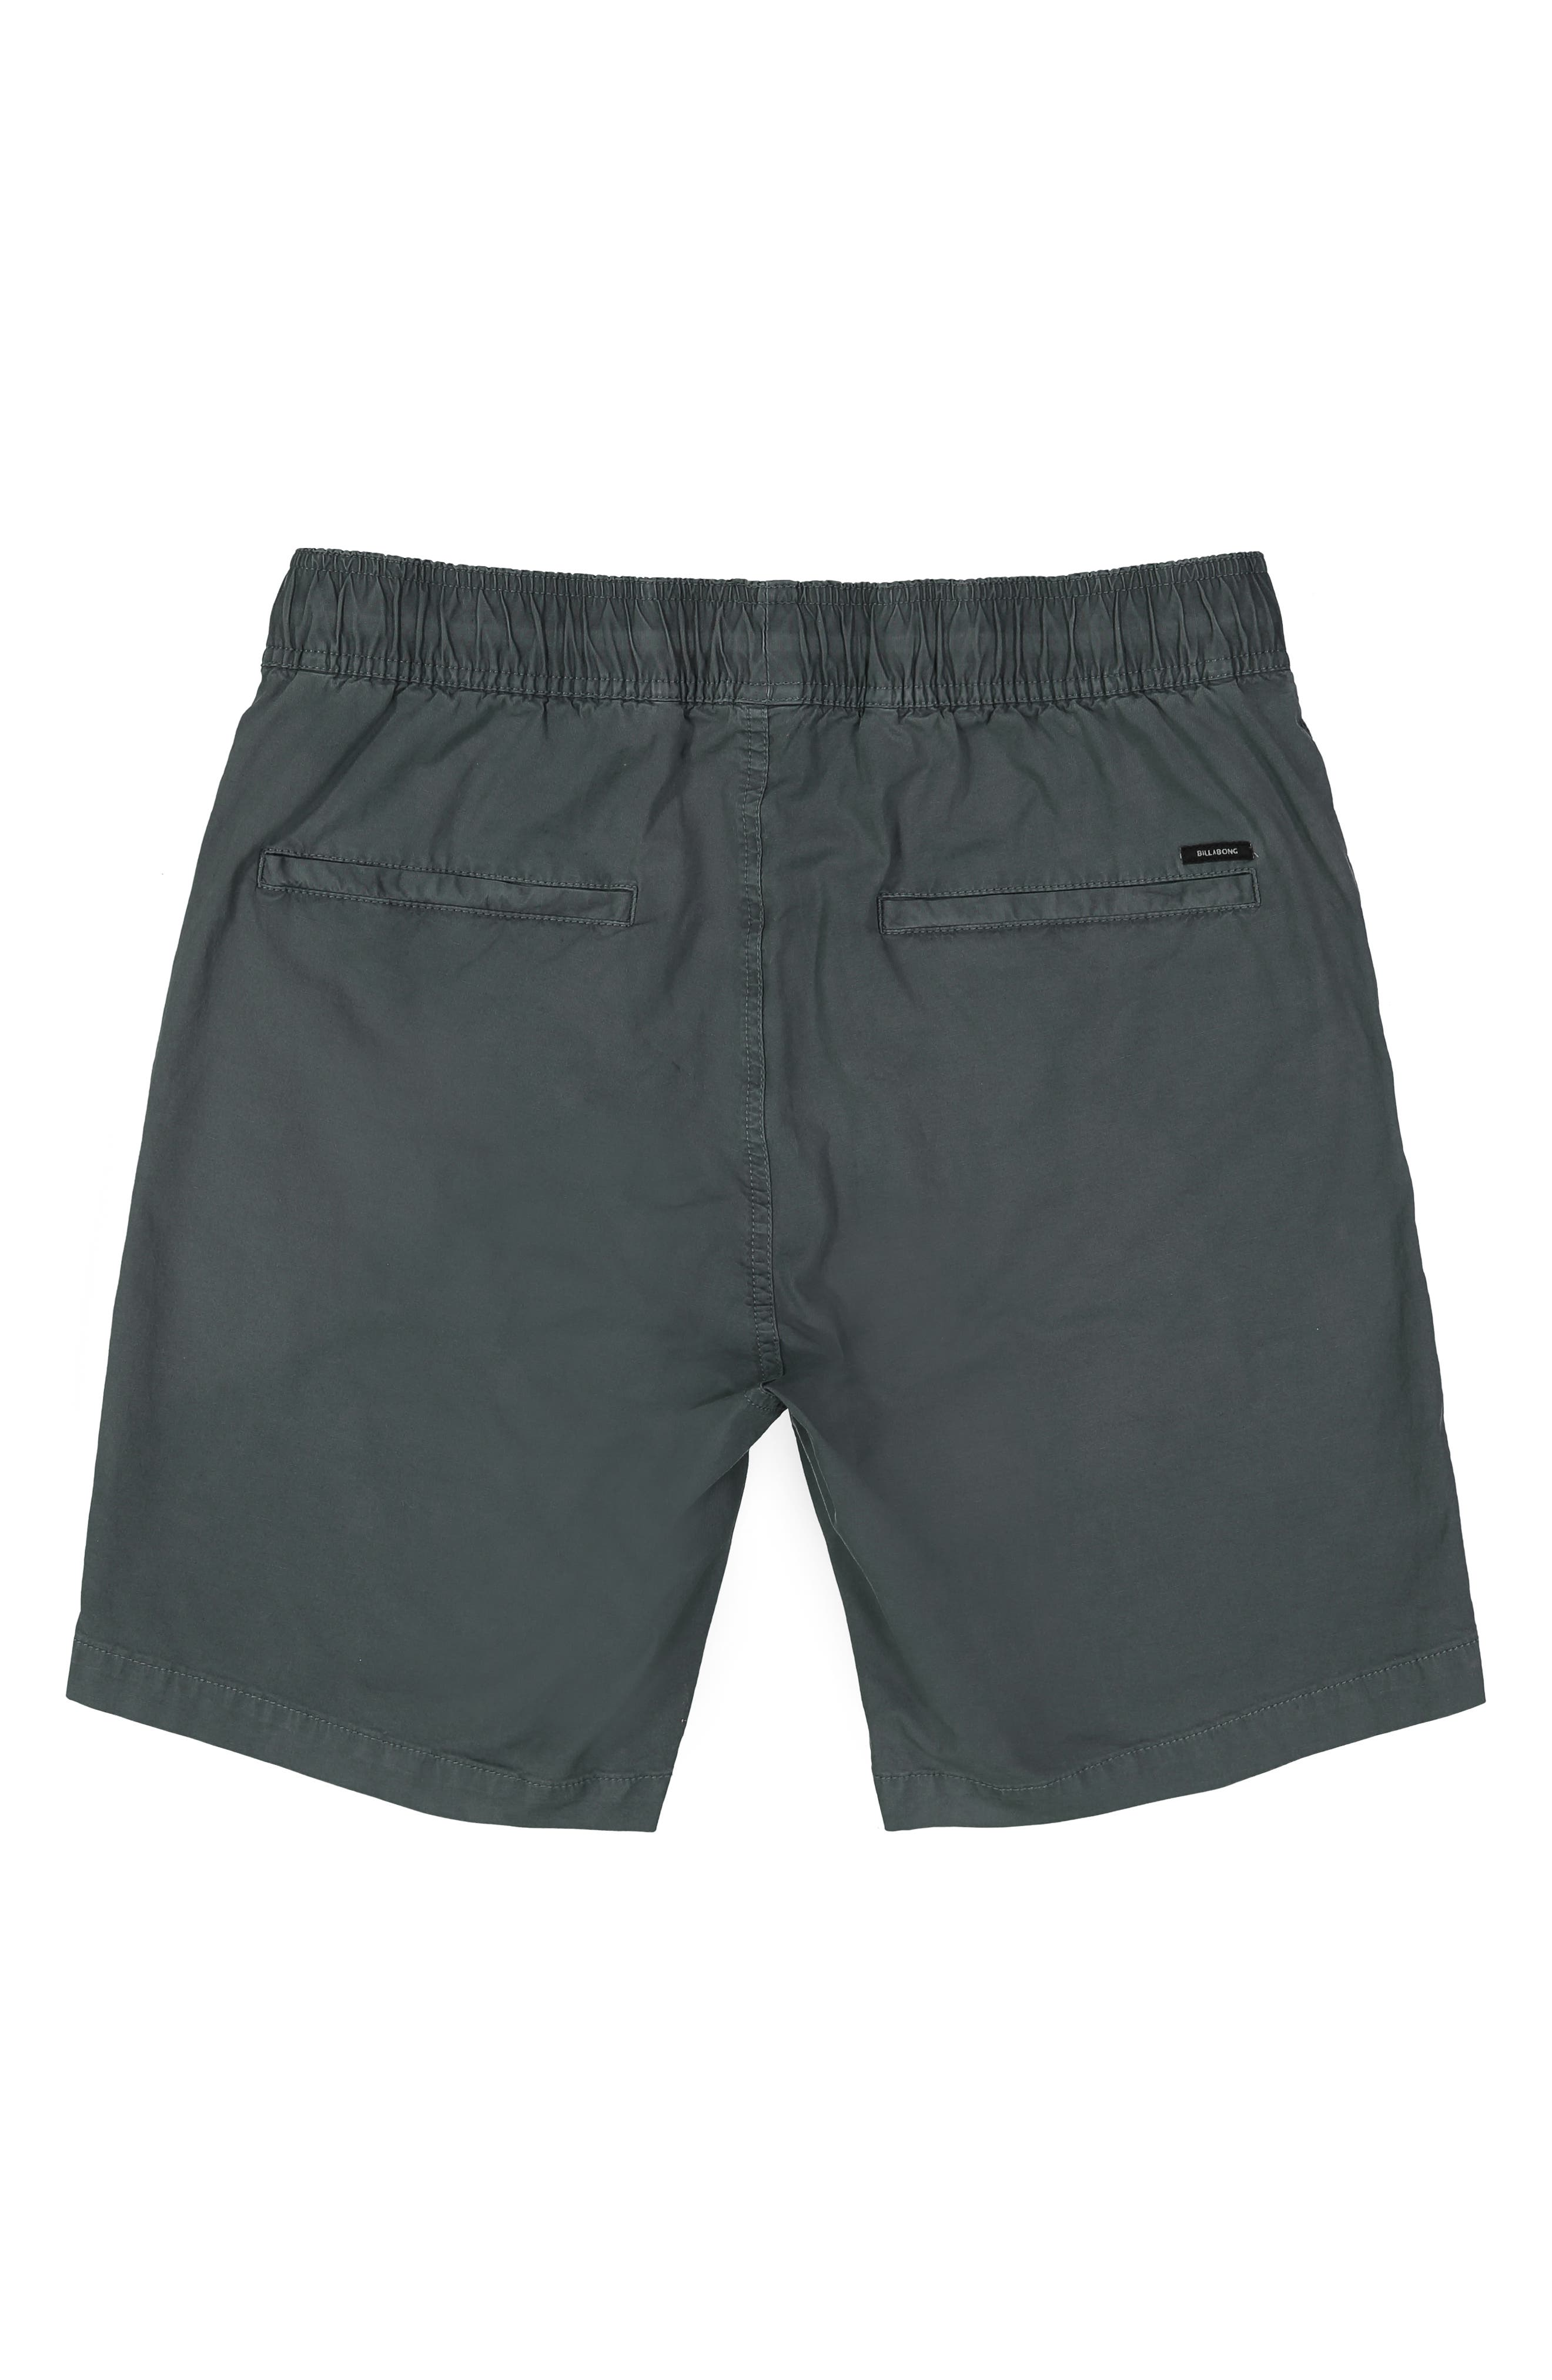 BILLABONG, Larry Layback Stretch Cotton Shorts, Alternate thumbnail 2, color, WASHED SLATE